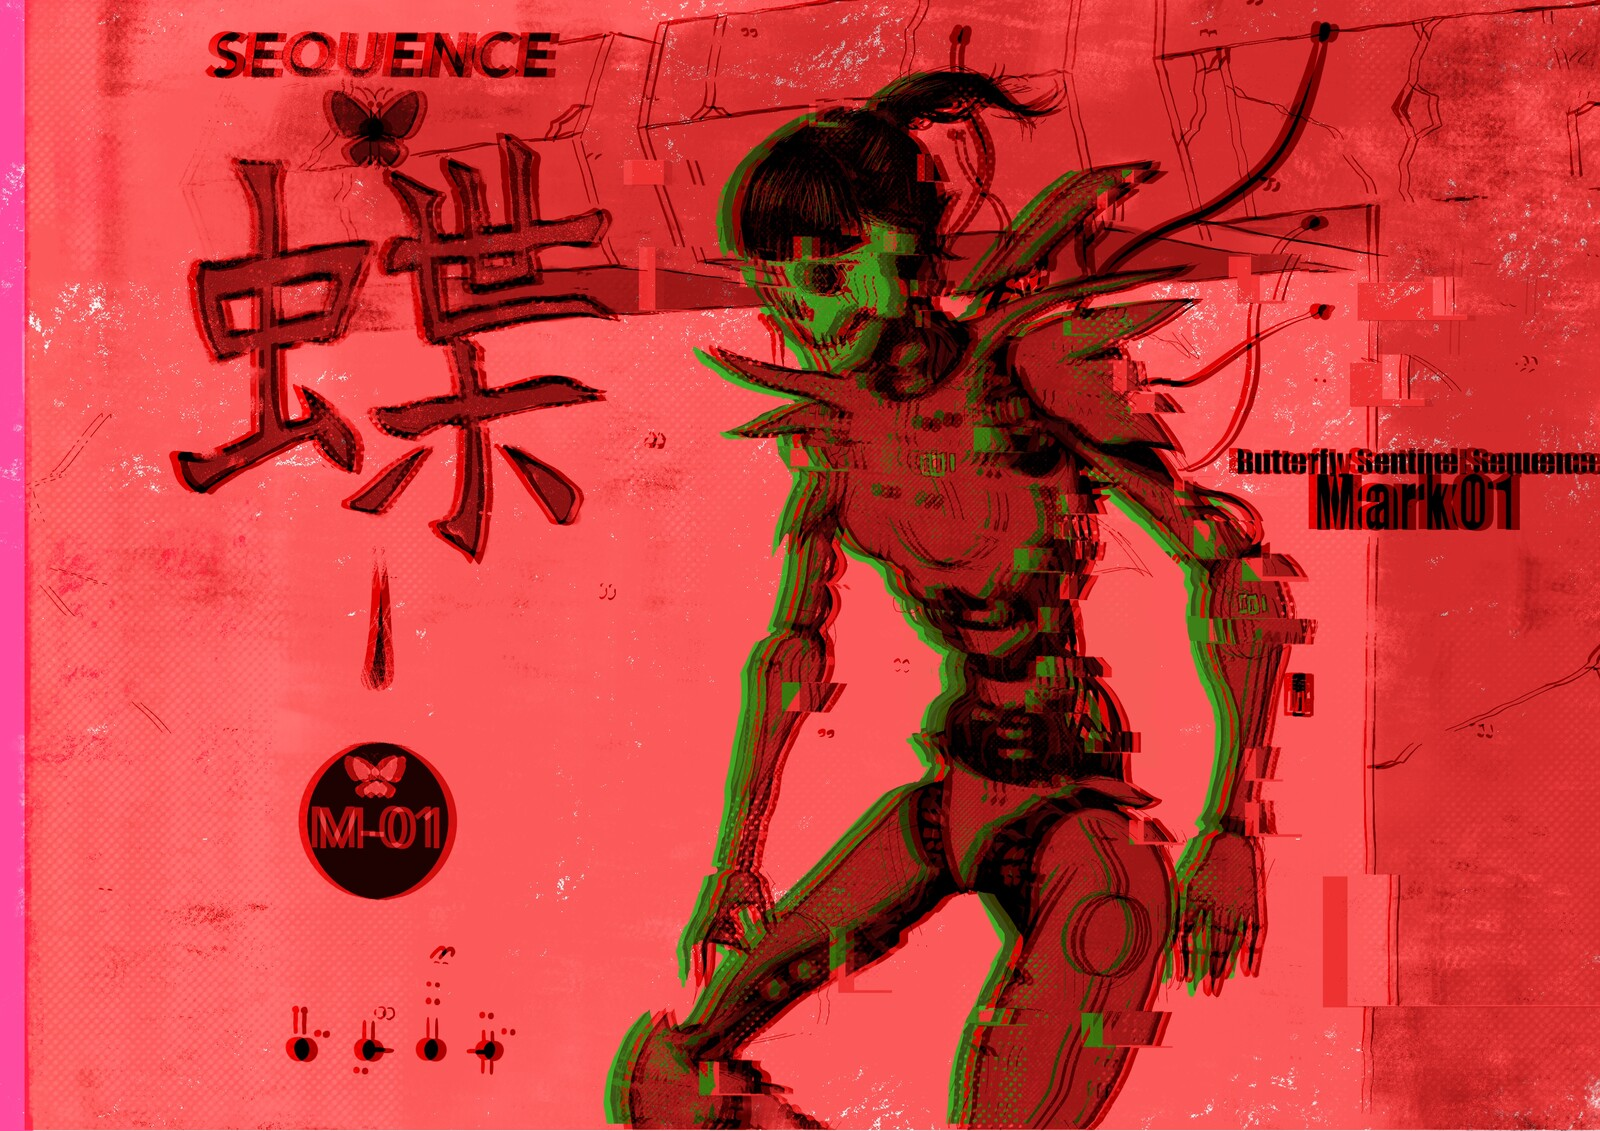 Experiment//Butterfly_Sentinel_Sequence//Mark01